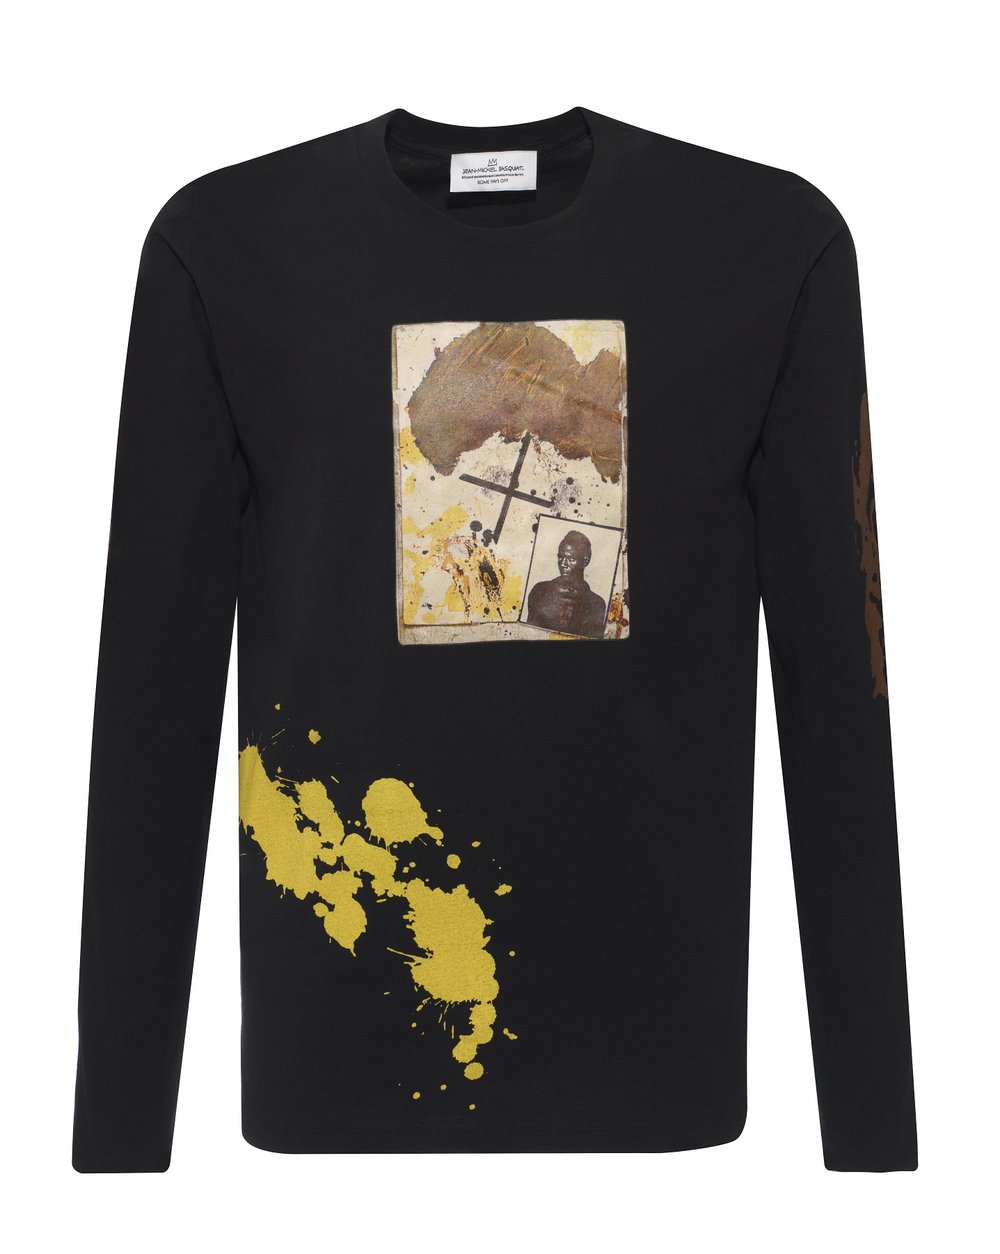 BASQUAIT - NOTEBOOK LONG SLEEVS SWEATSHIRT - BLACK - £100 - BROWNS FASHION.jpg